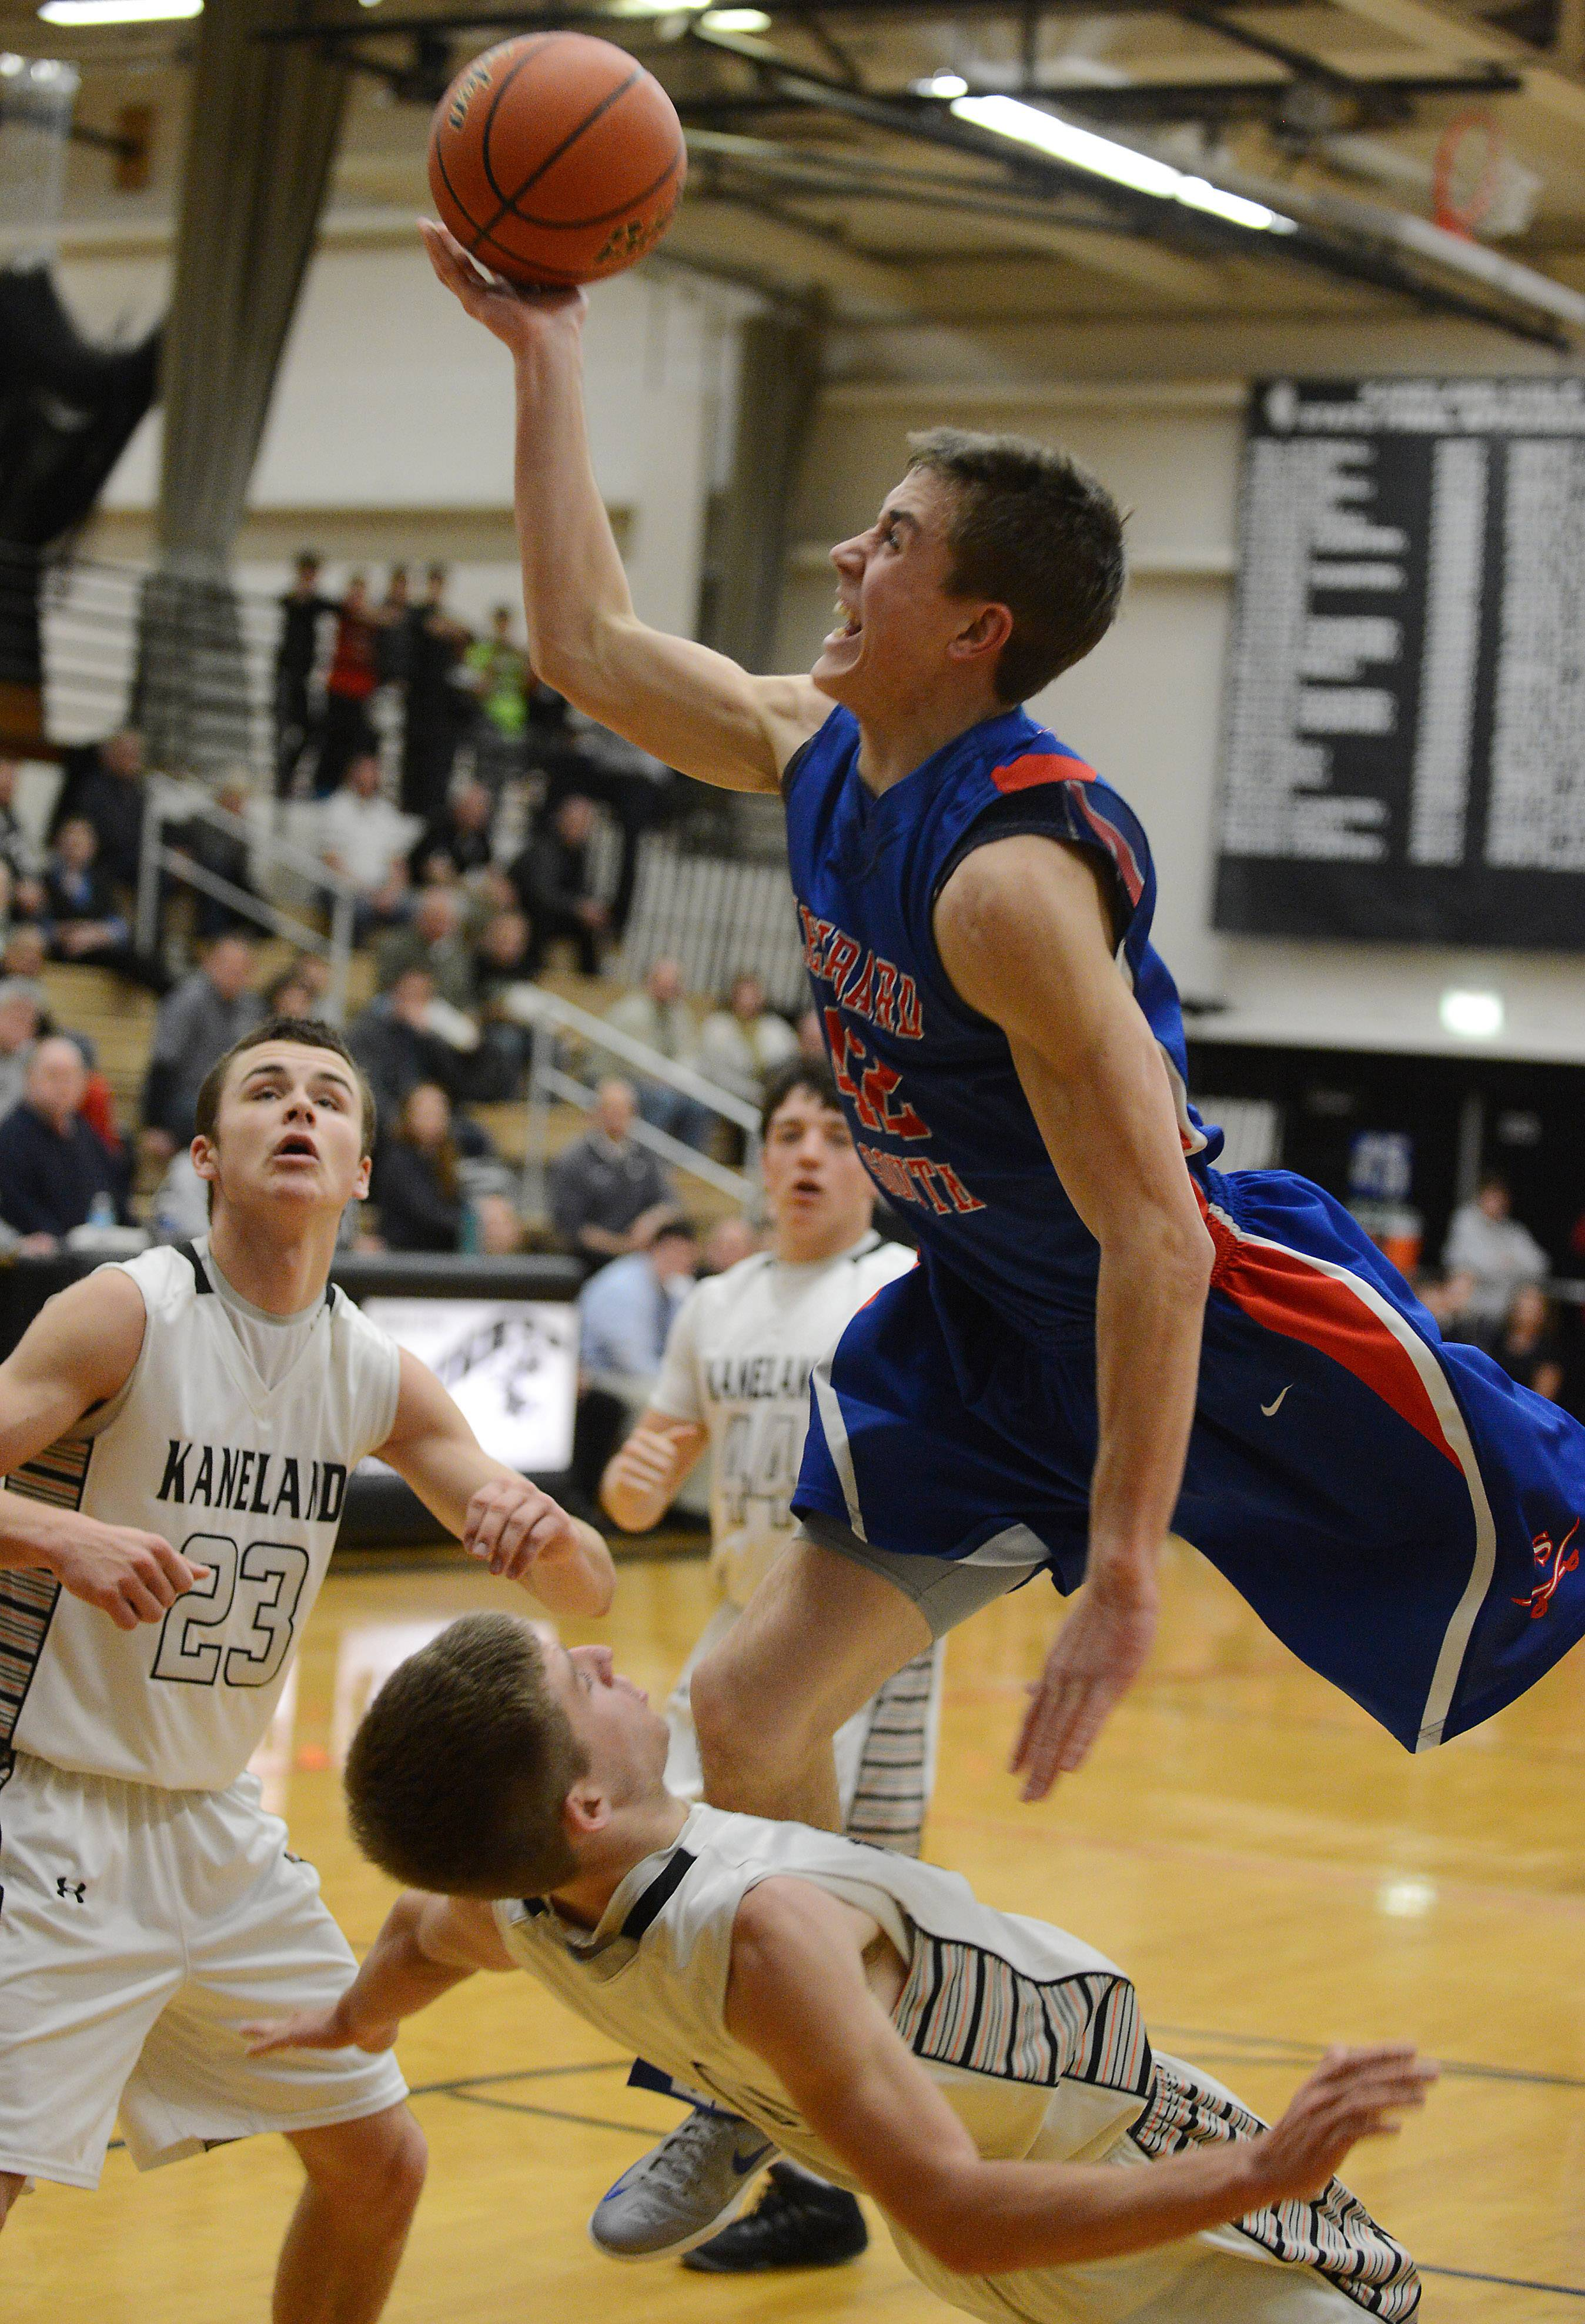 Kaneland's Drew David (4) draws a charge on Glenbard South's Billy Bair (42) during Tuesday's regional action in Kaneland.